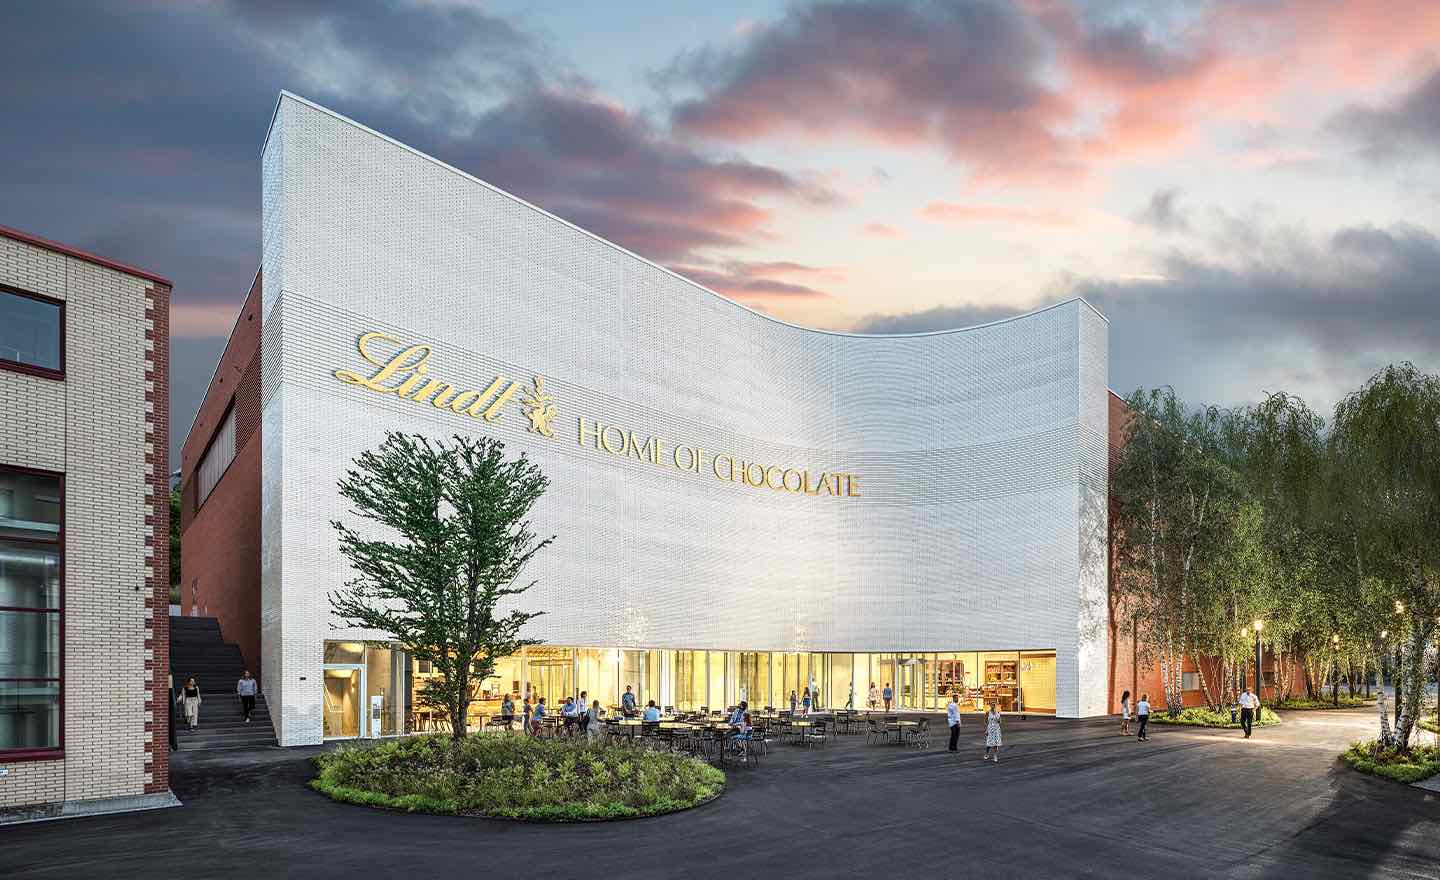 Lindt Home of Chocolate will open on September 13, 2020